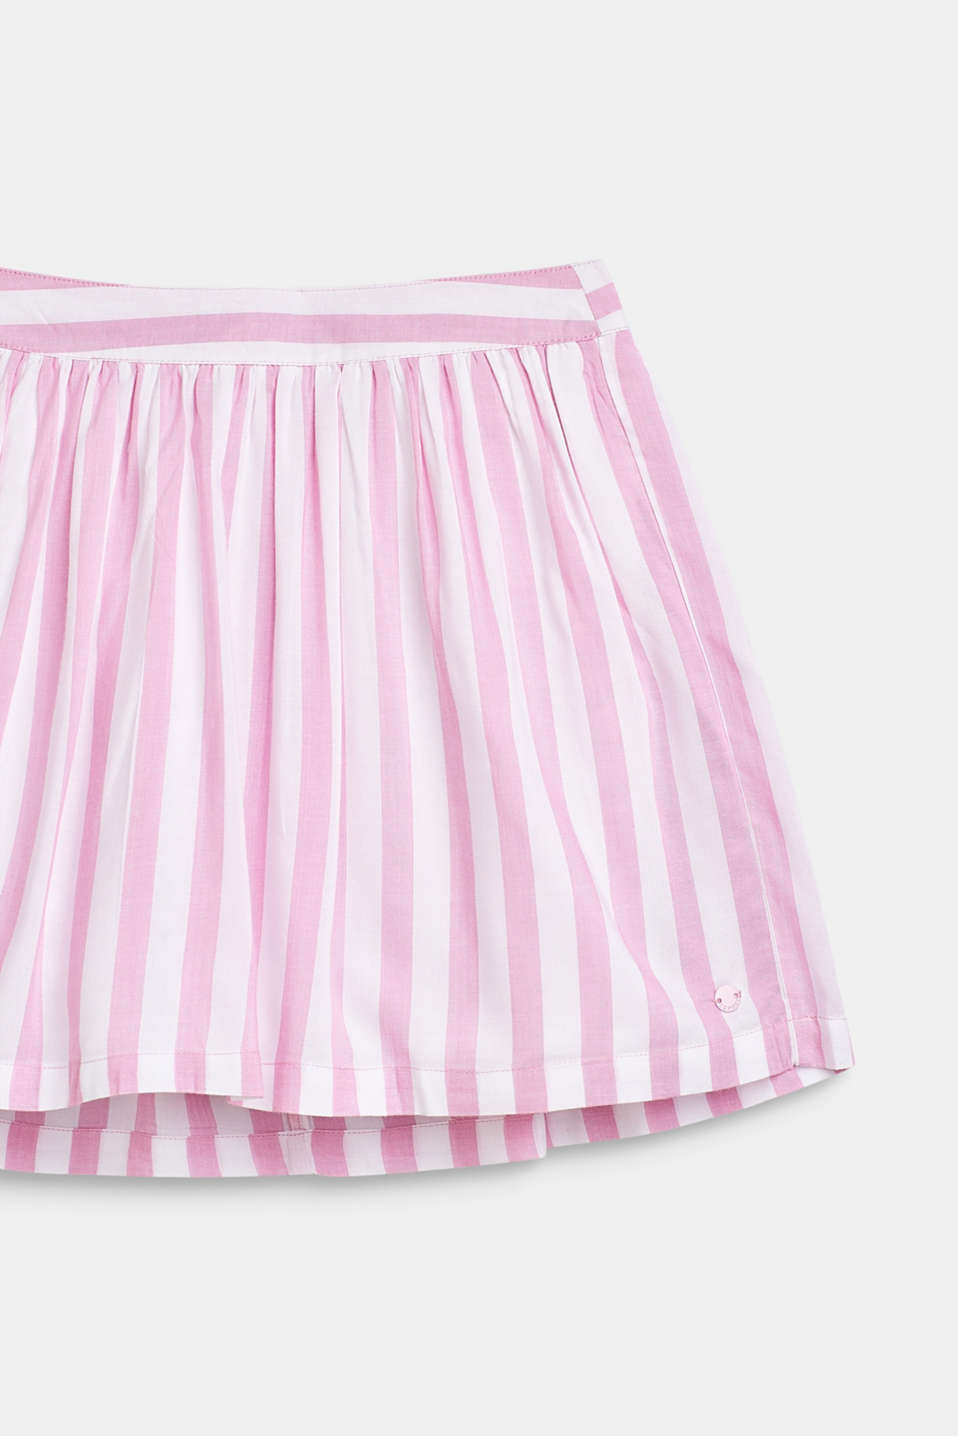 Striped skirt in lightweight woven fabric, LCCANDY PINK, detail image number 2